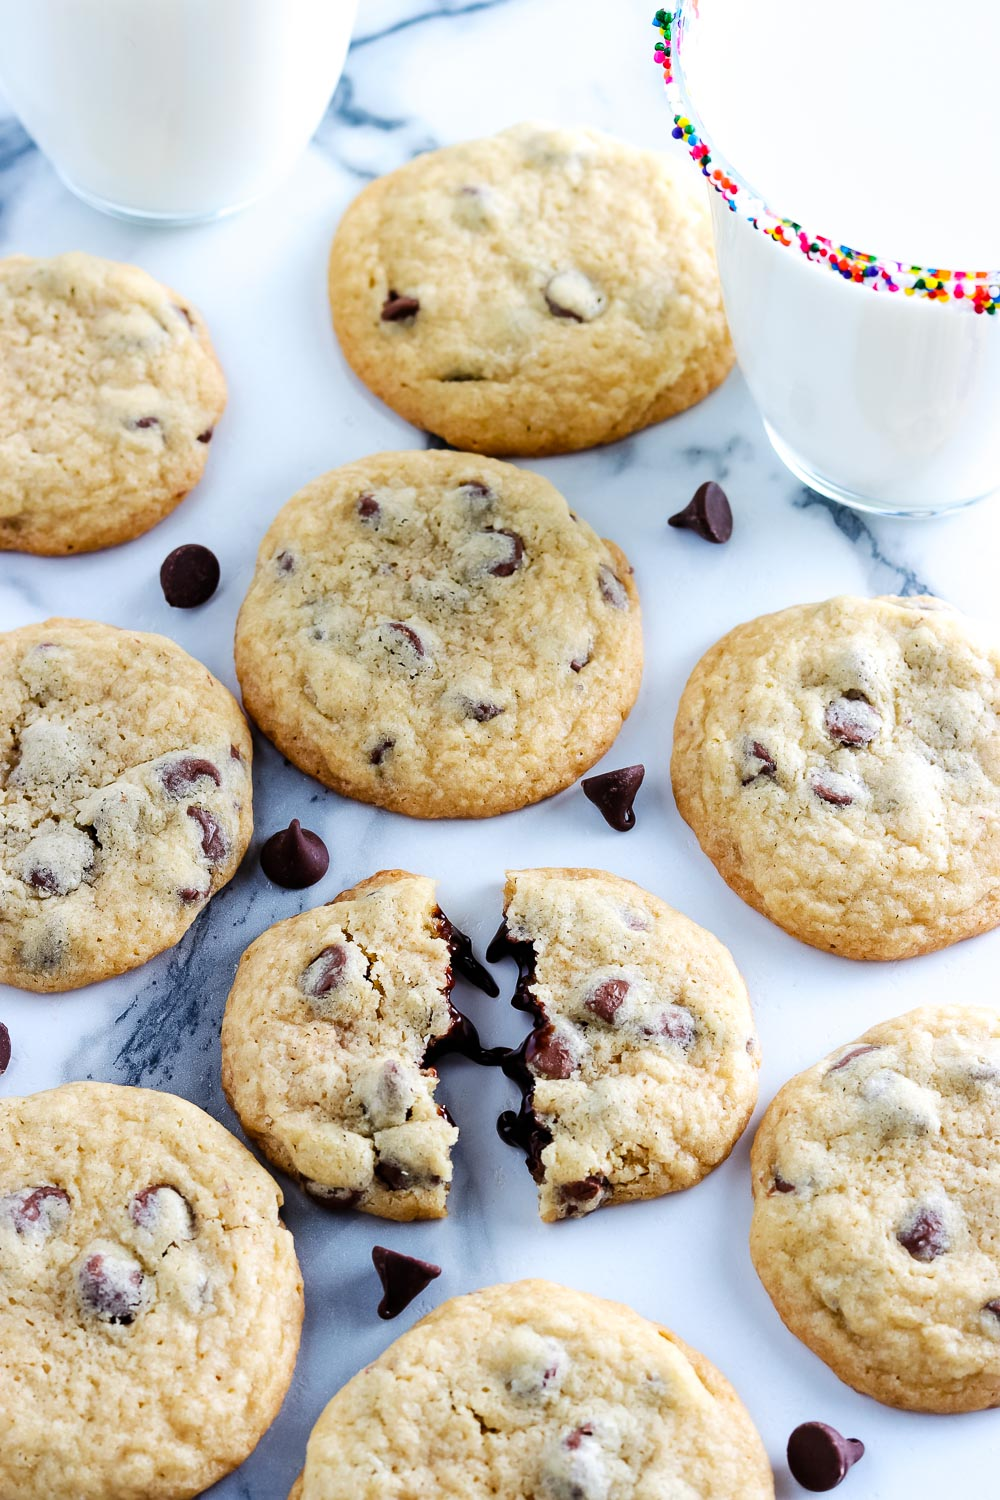 Copycat Mrs. Field's Chocolate Chip Cookies on a marble counter tip with a glass of milk nearby.